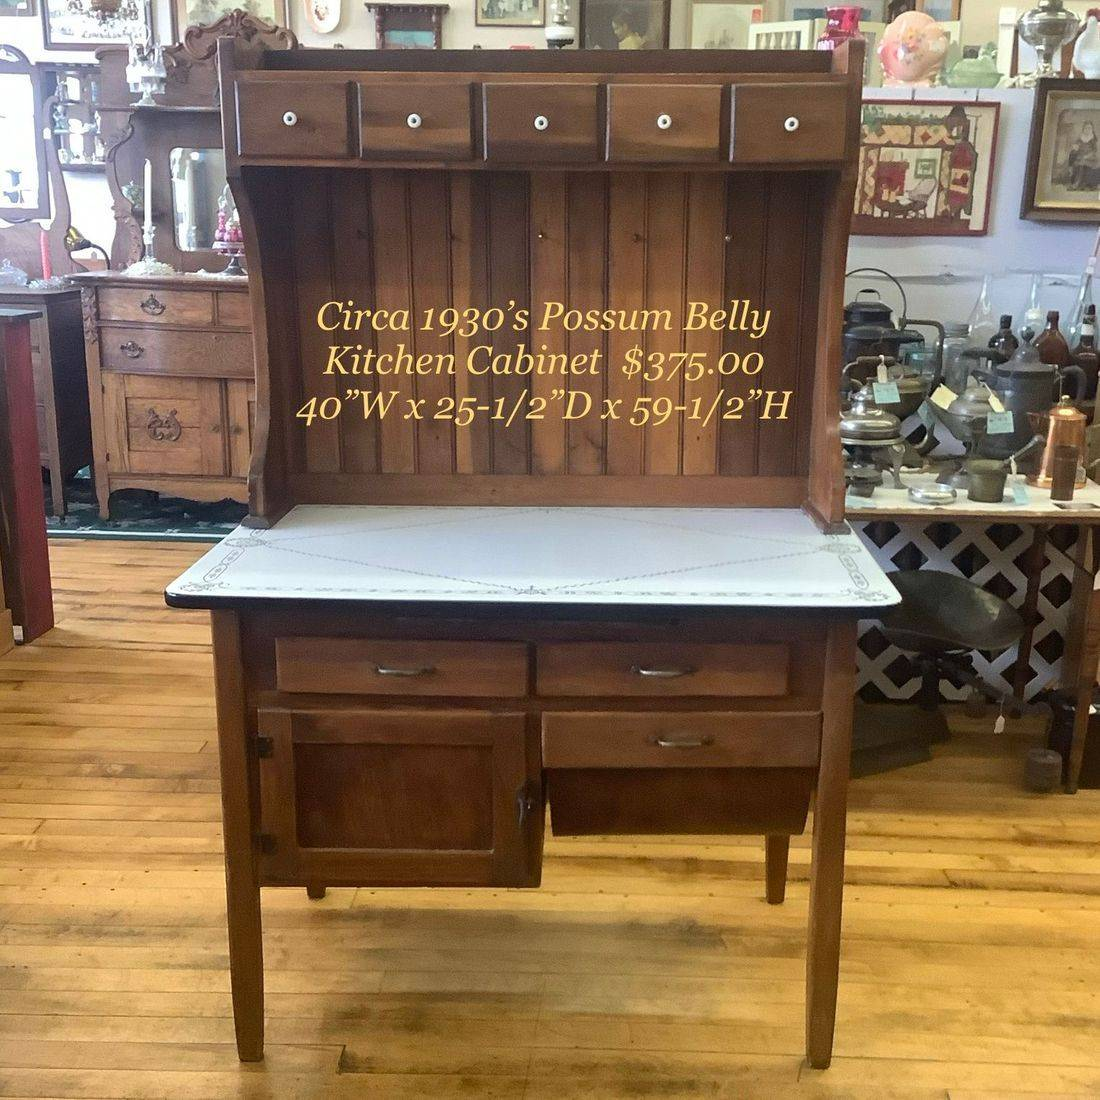 "Circa 1930's Possum Belly Enamel Top Kitchen Cabinet 40""W x 25-1/2""D x 59-1/2""Hgt.   $375.00"